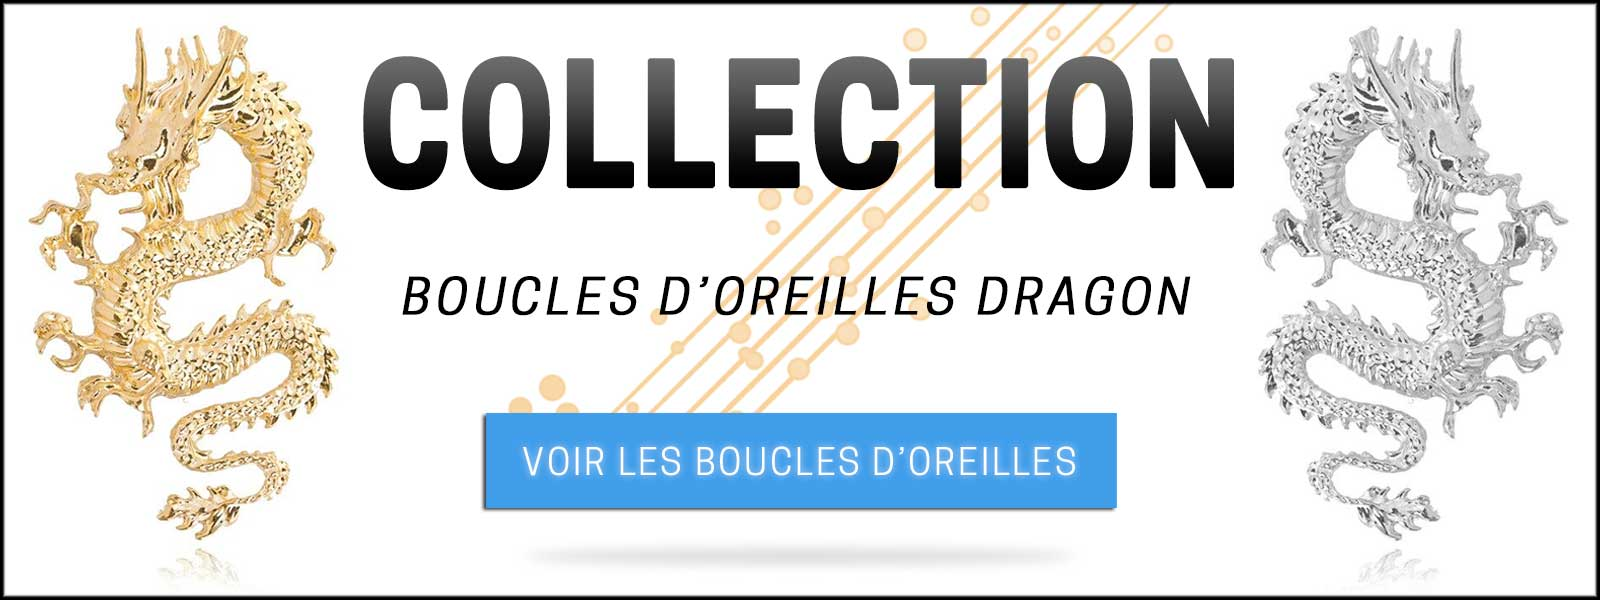 Collection boucles d'oreilles dragon